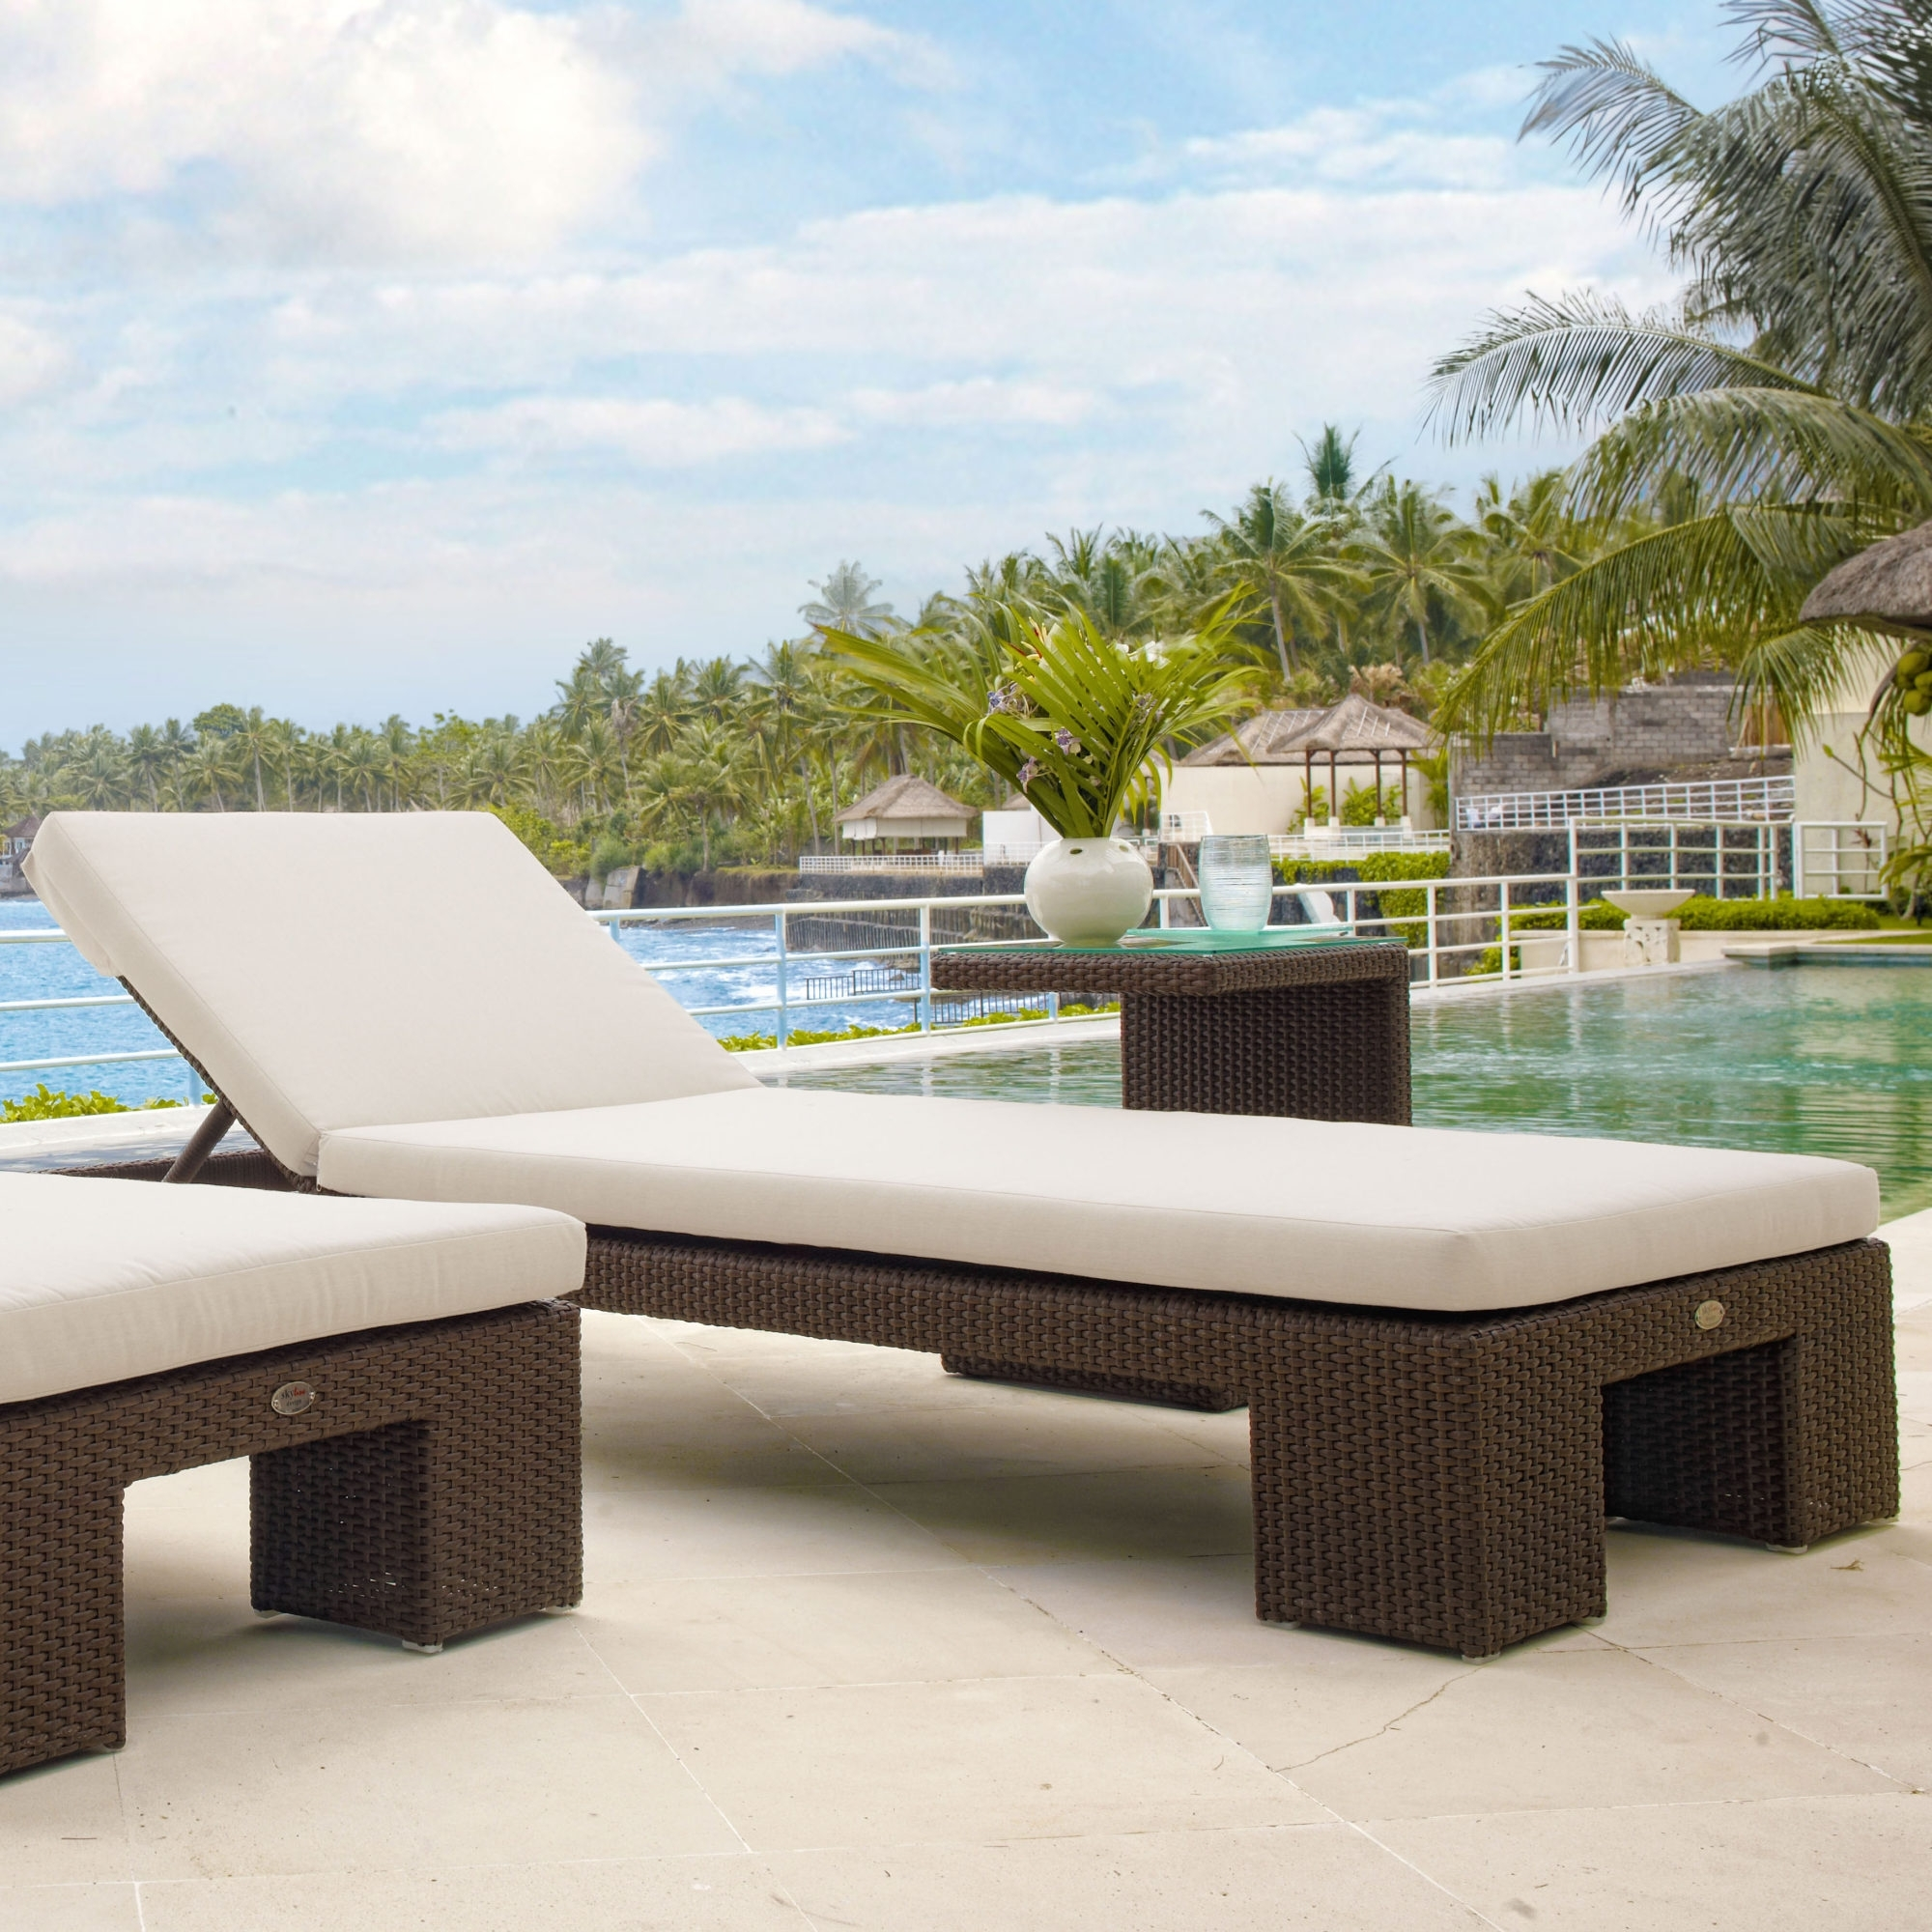 Pacific Double Outdoor Hospitality Furniture